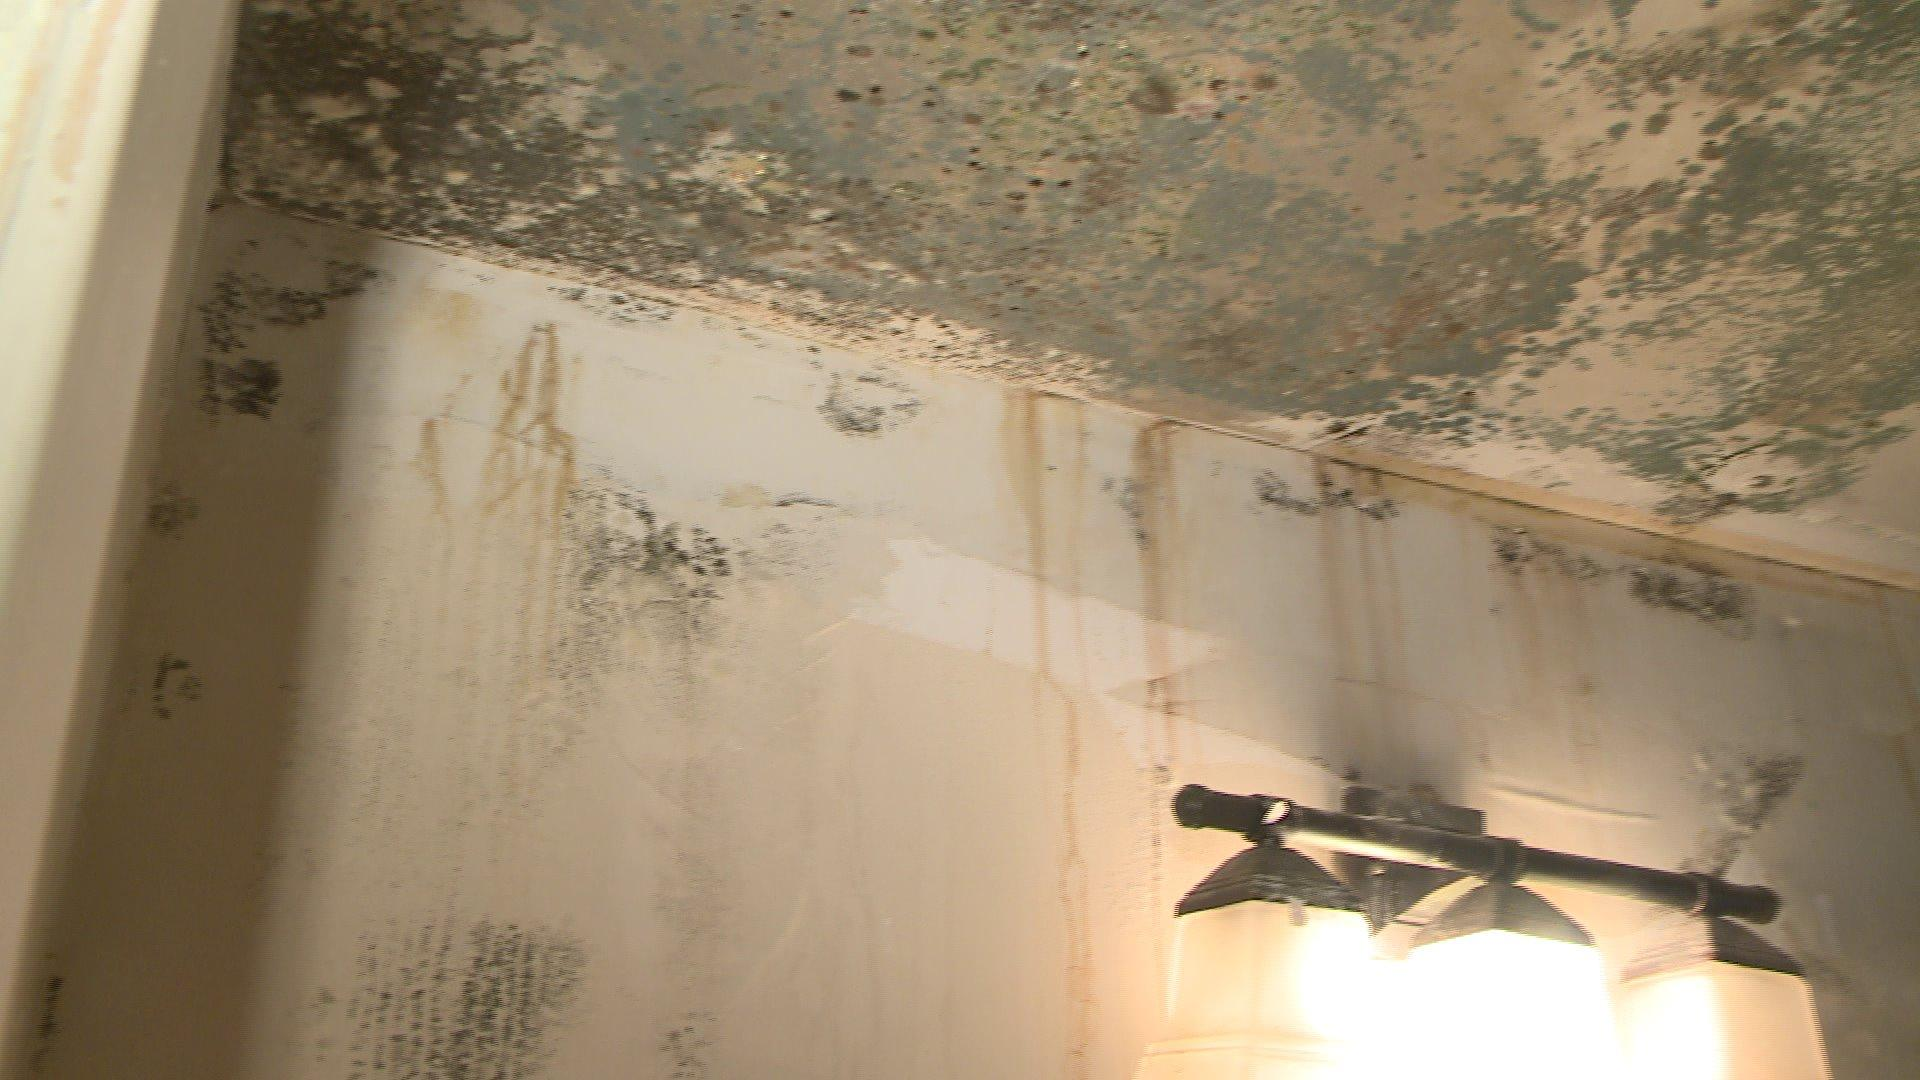 Ceiling Collapses on Teen Girls in Home Resident Says is Riddled With Problems